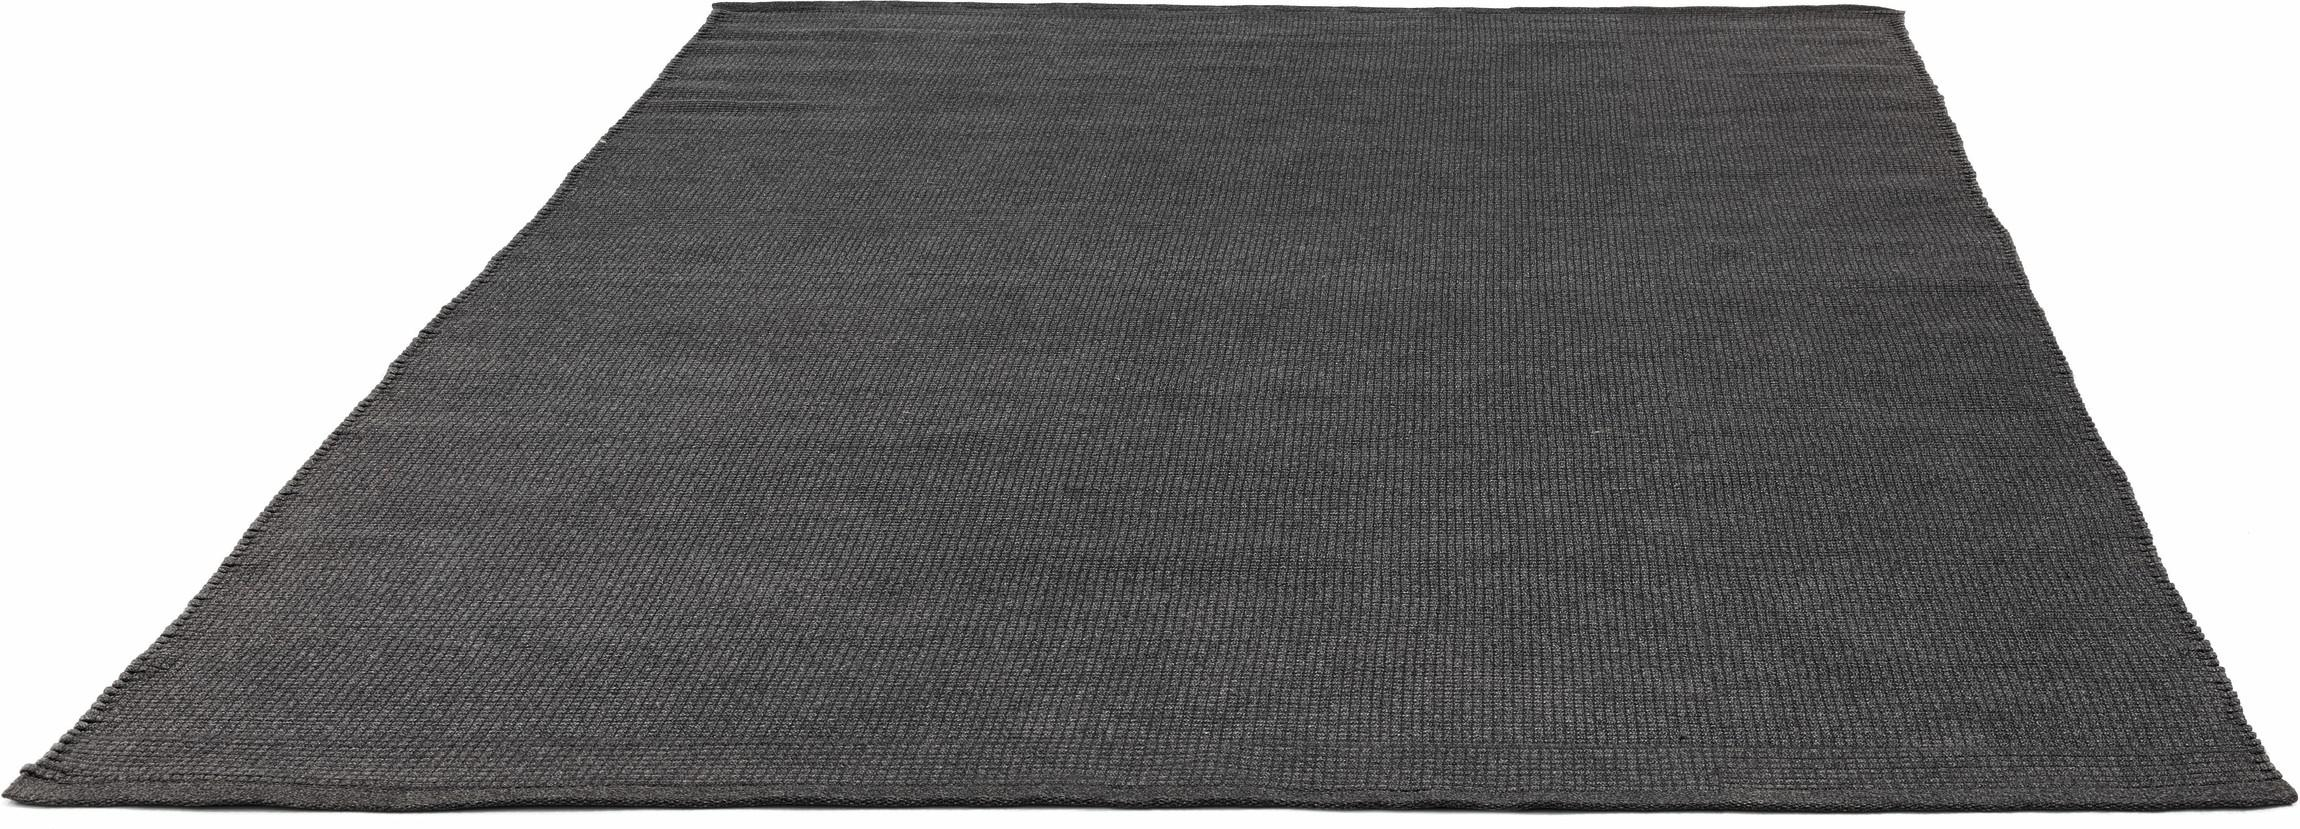 Rugs Linear 200x290 anthracite